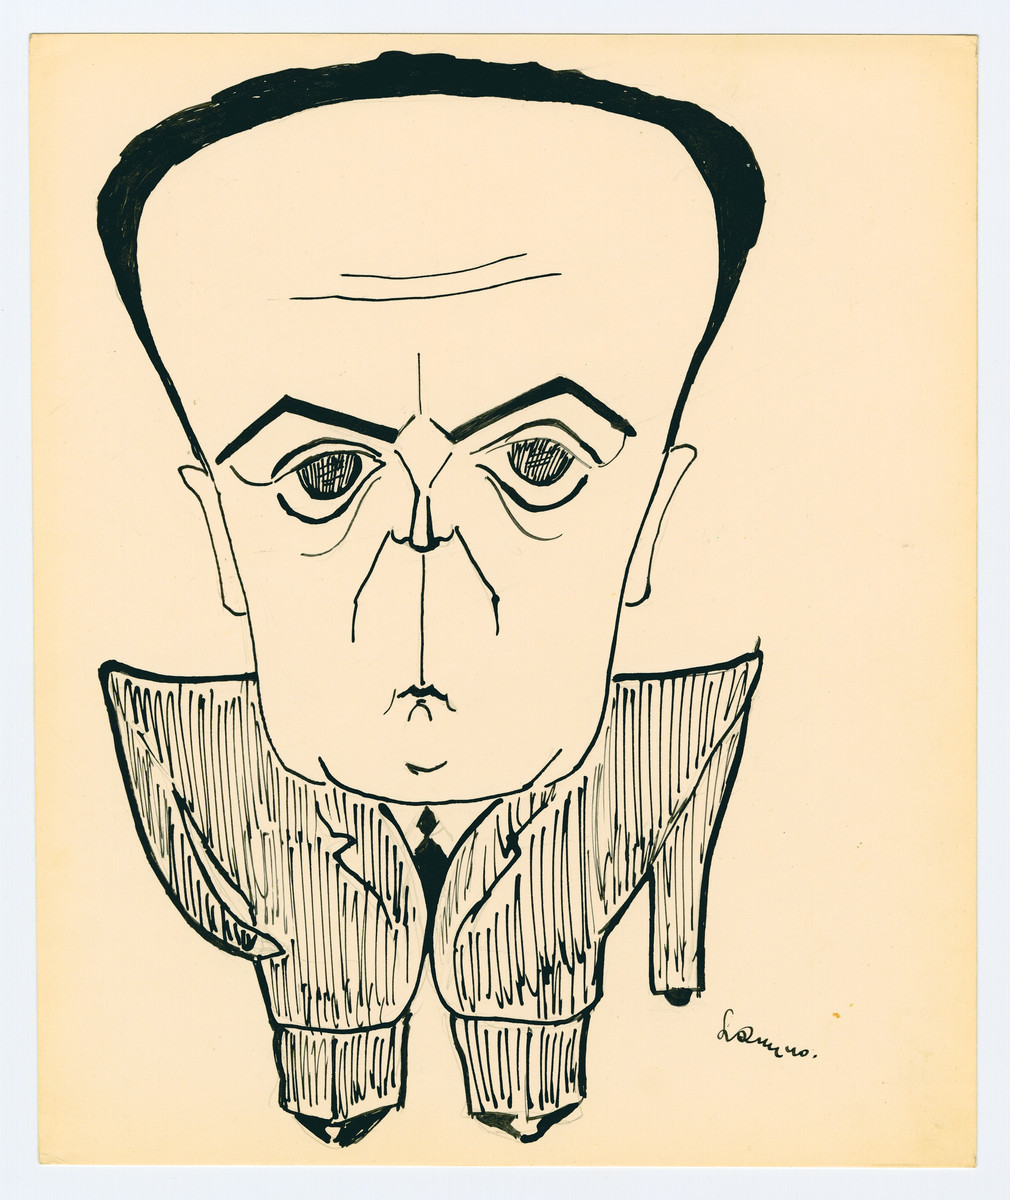 Caricature by Lutek Orenbach of Uncle Knopp.